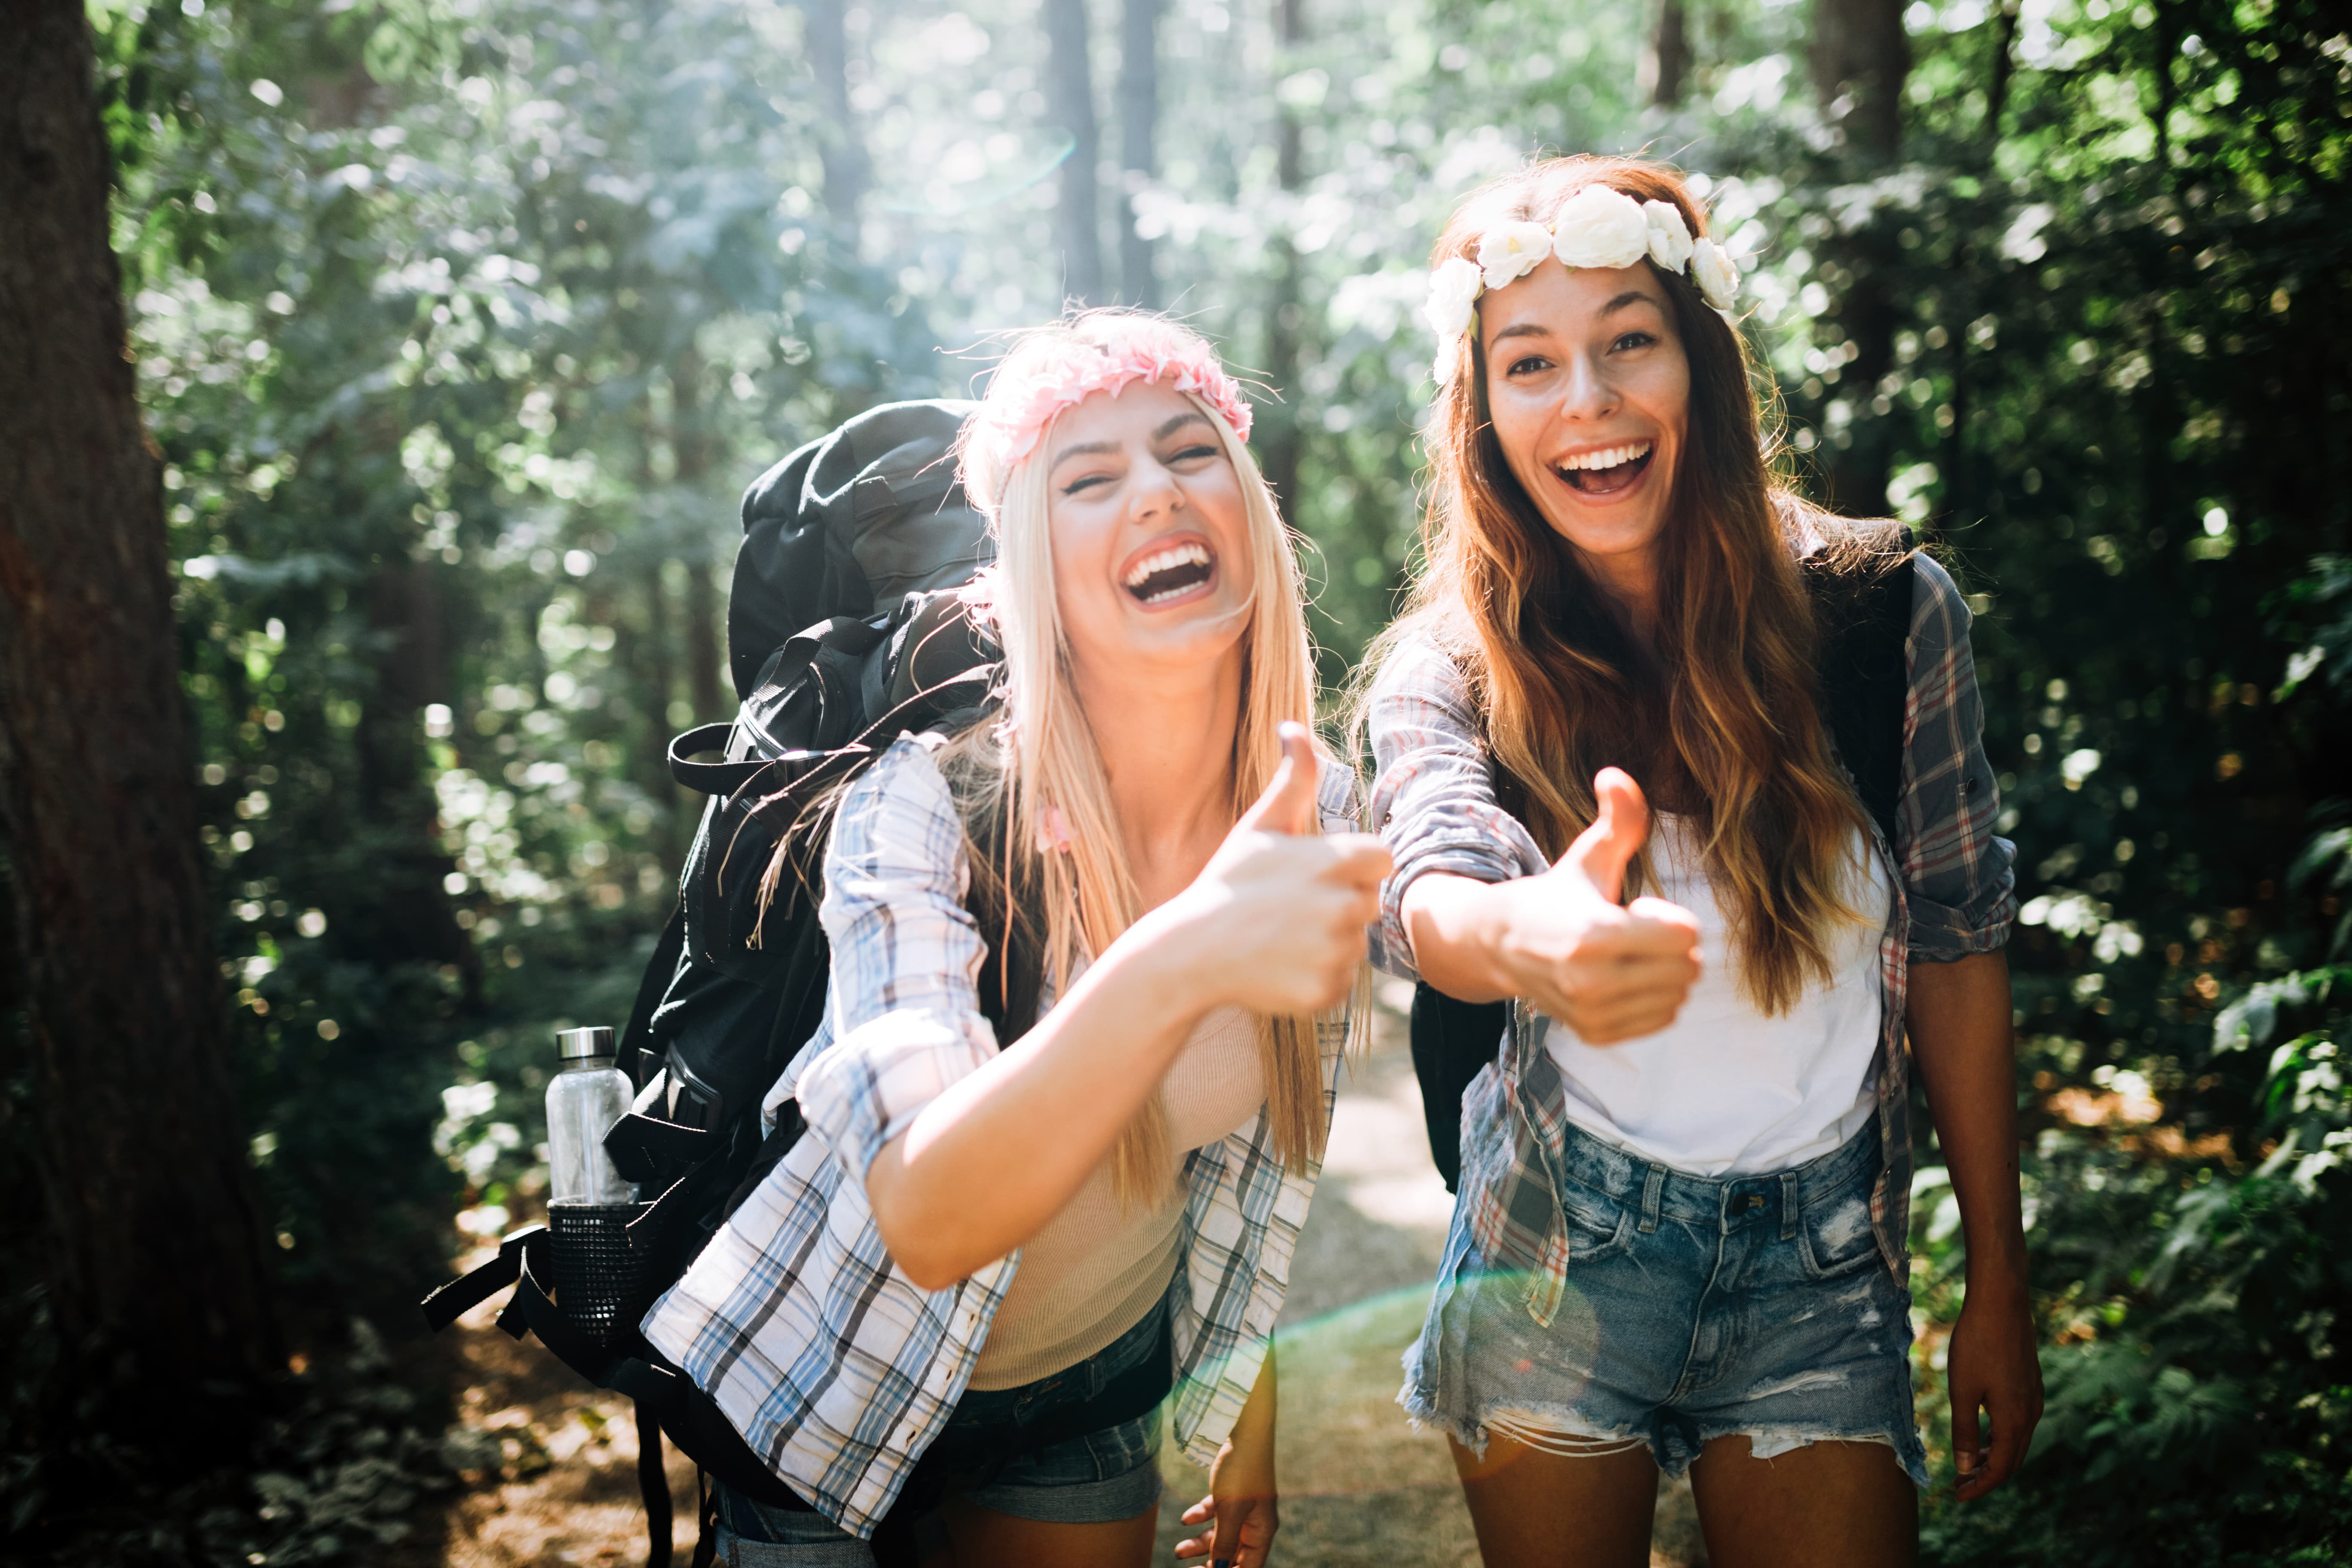 13 fun healthy sisterhood ideas for your girl squad the strong